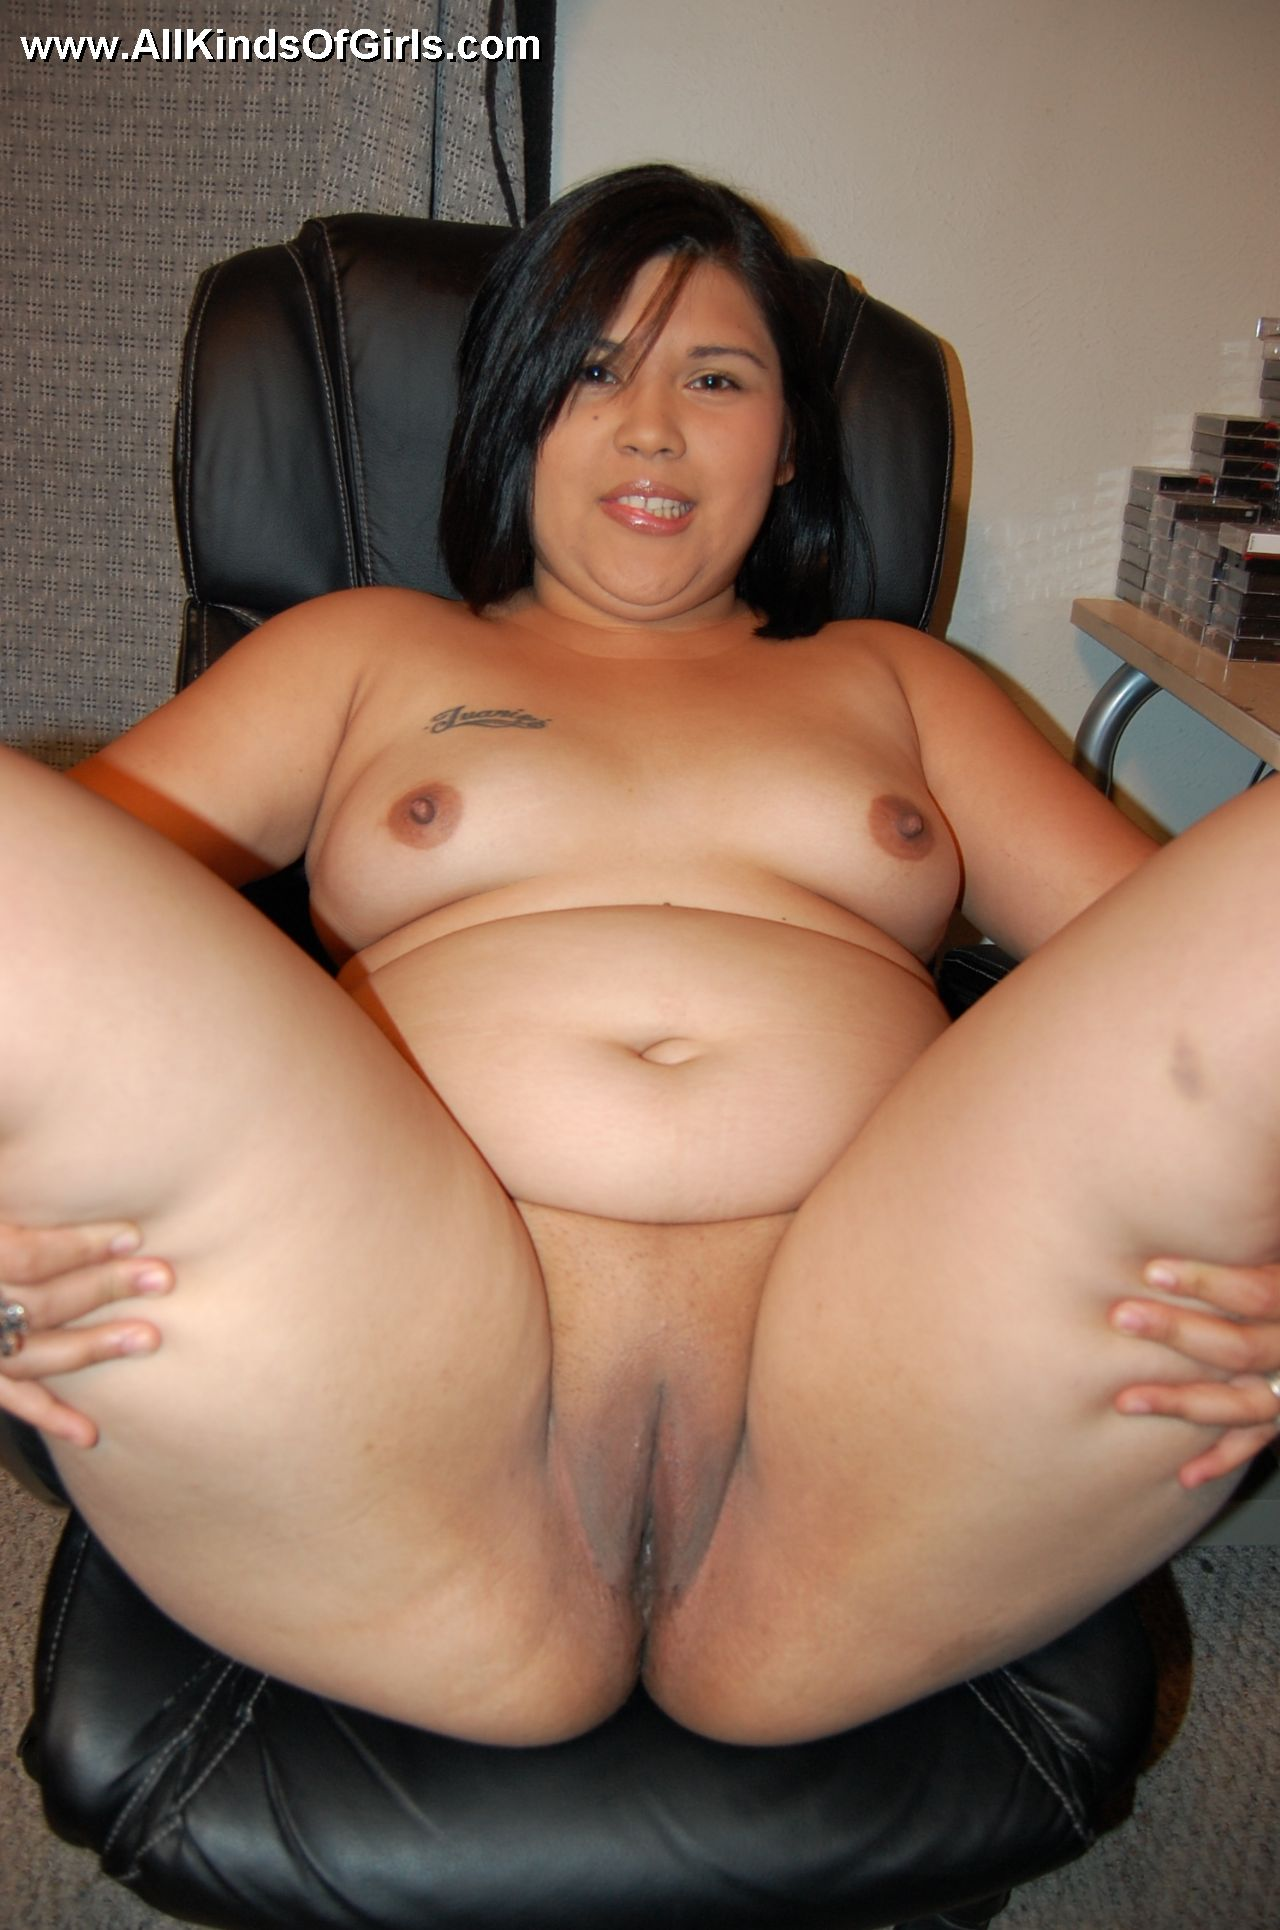 Vid...the longer asian ass chubby fat in mature stocking woman really nice